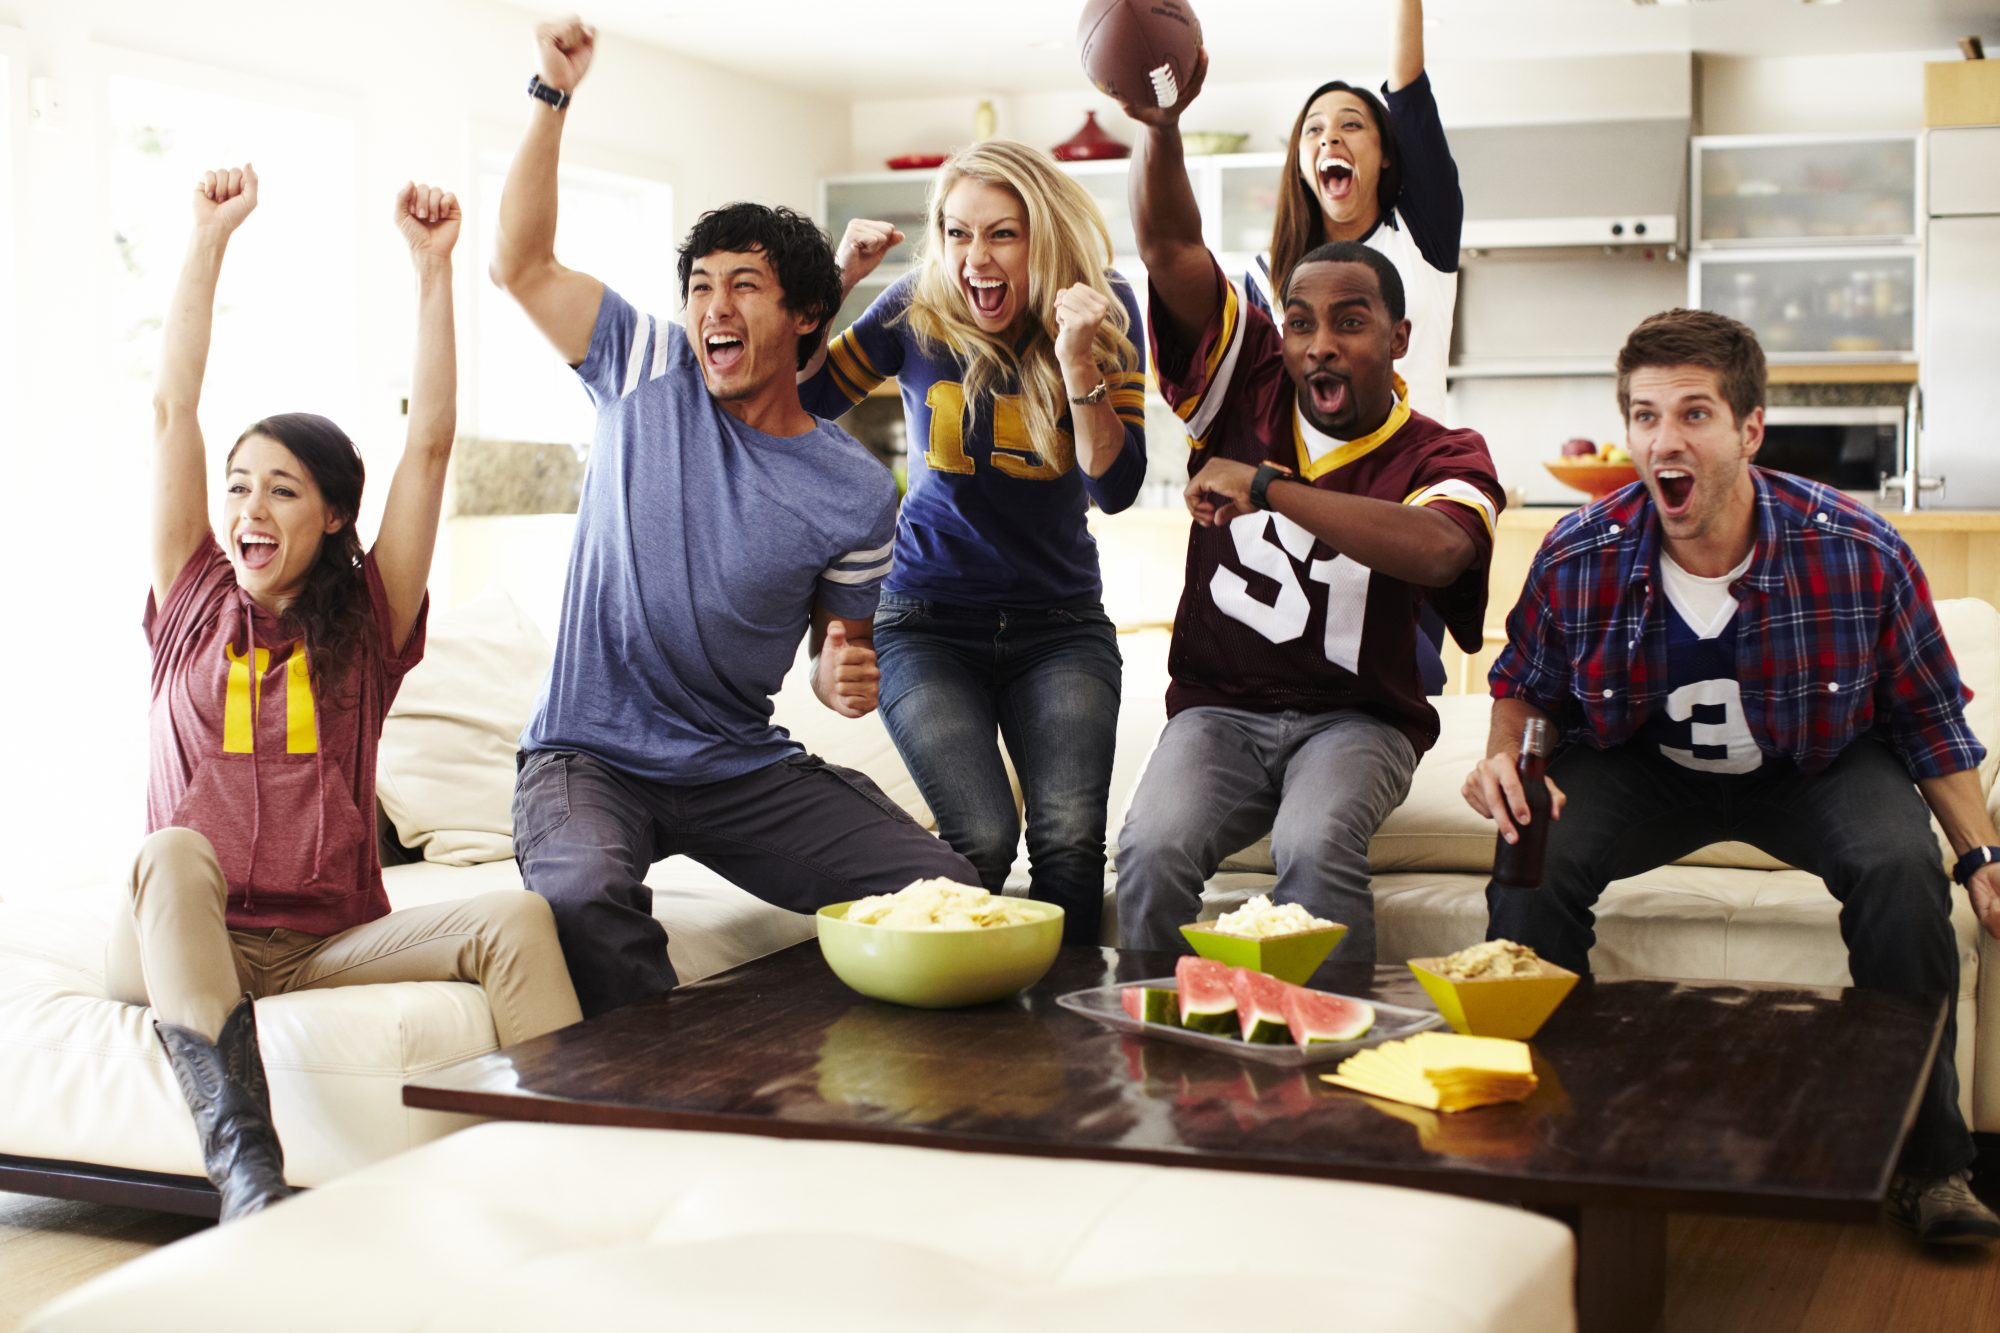 5 Tips for Hosting the Best Super Bowl Party Ever